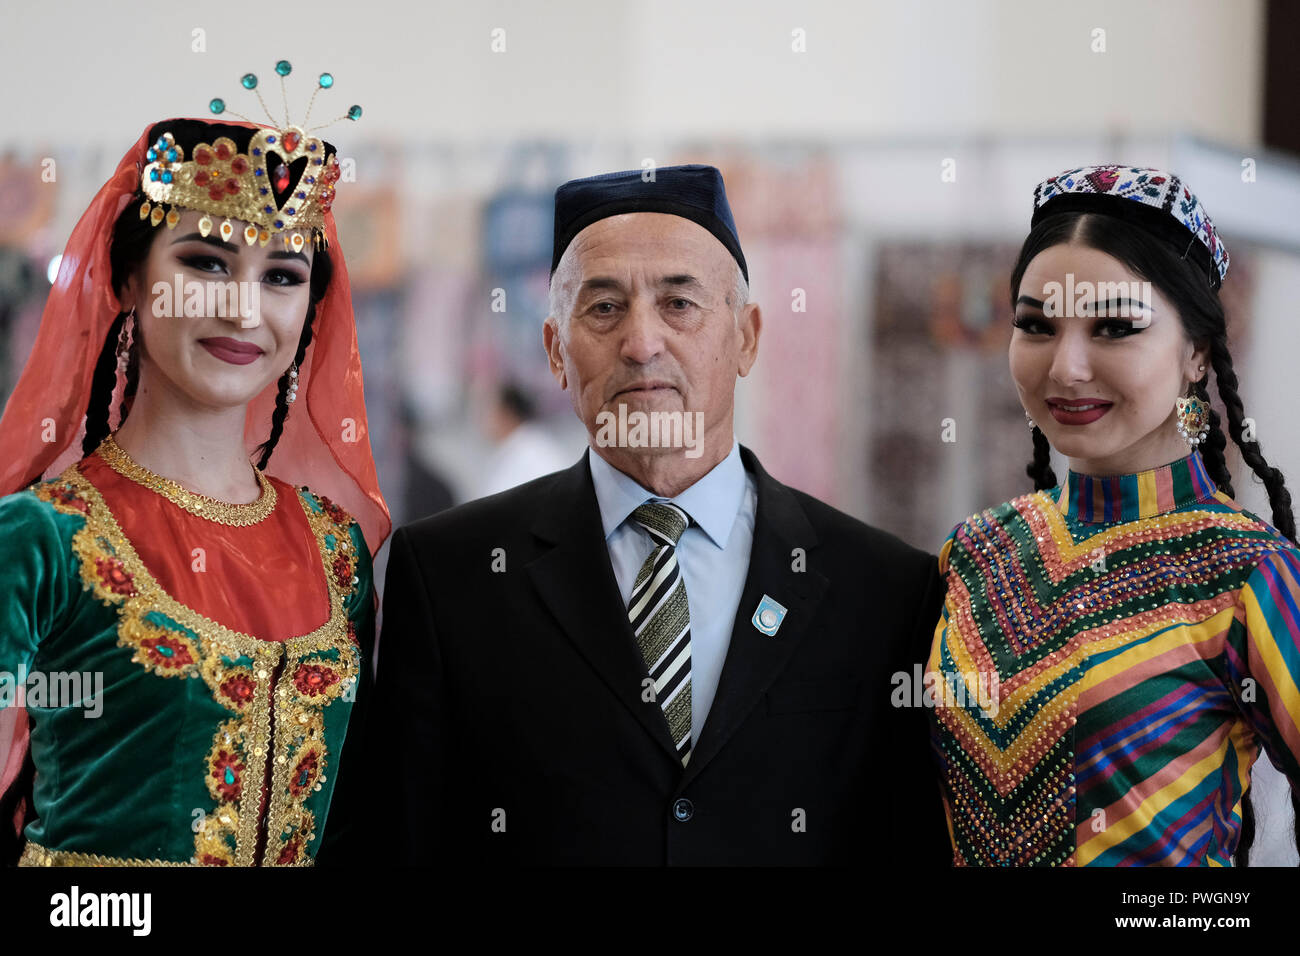 An elderly Uzbek man posing with young women wearing traditional garment in  the city of Tashkent a01aa5fa7e7a